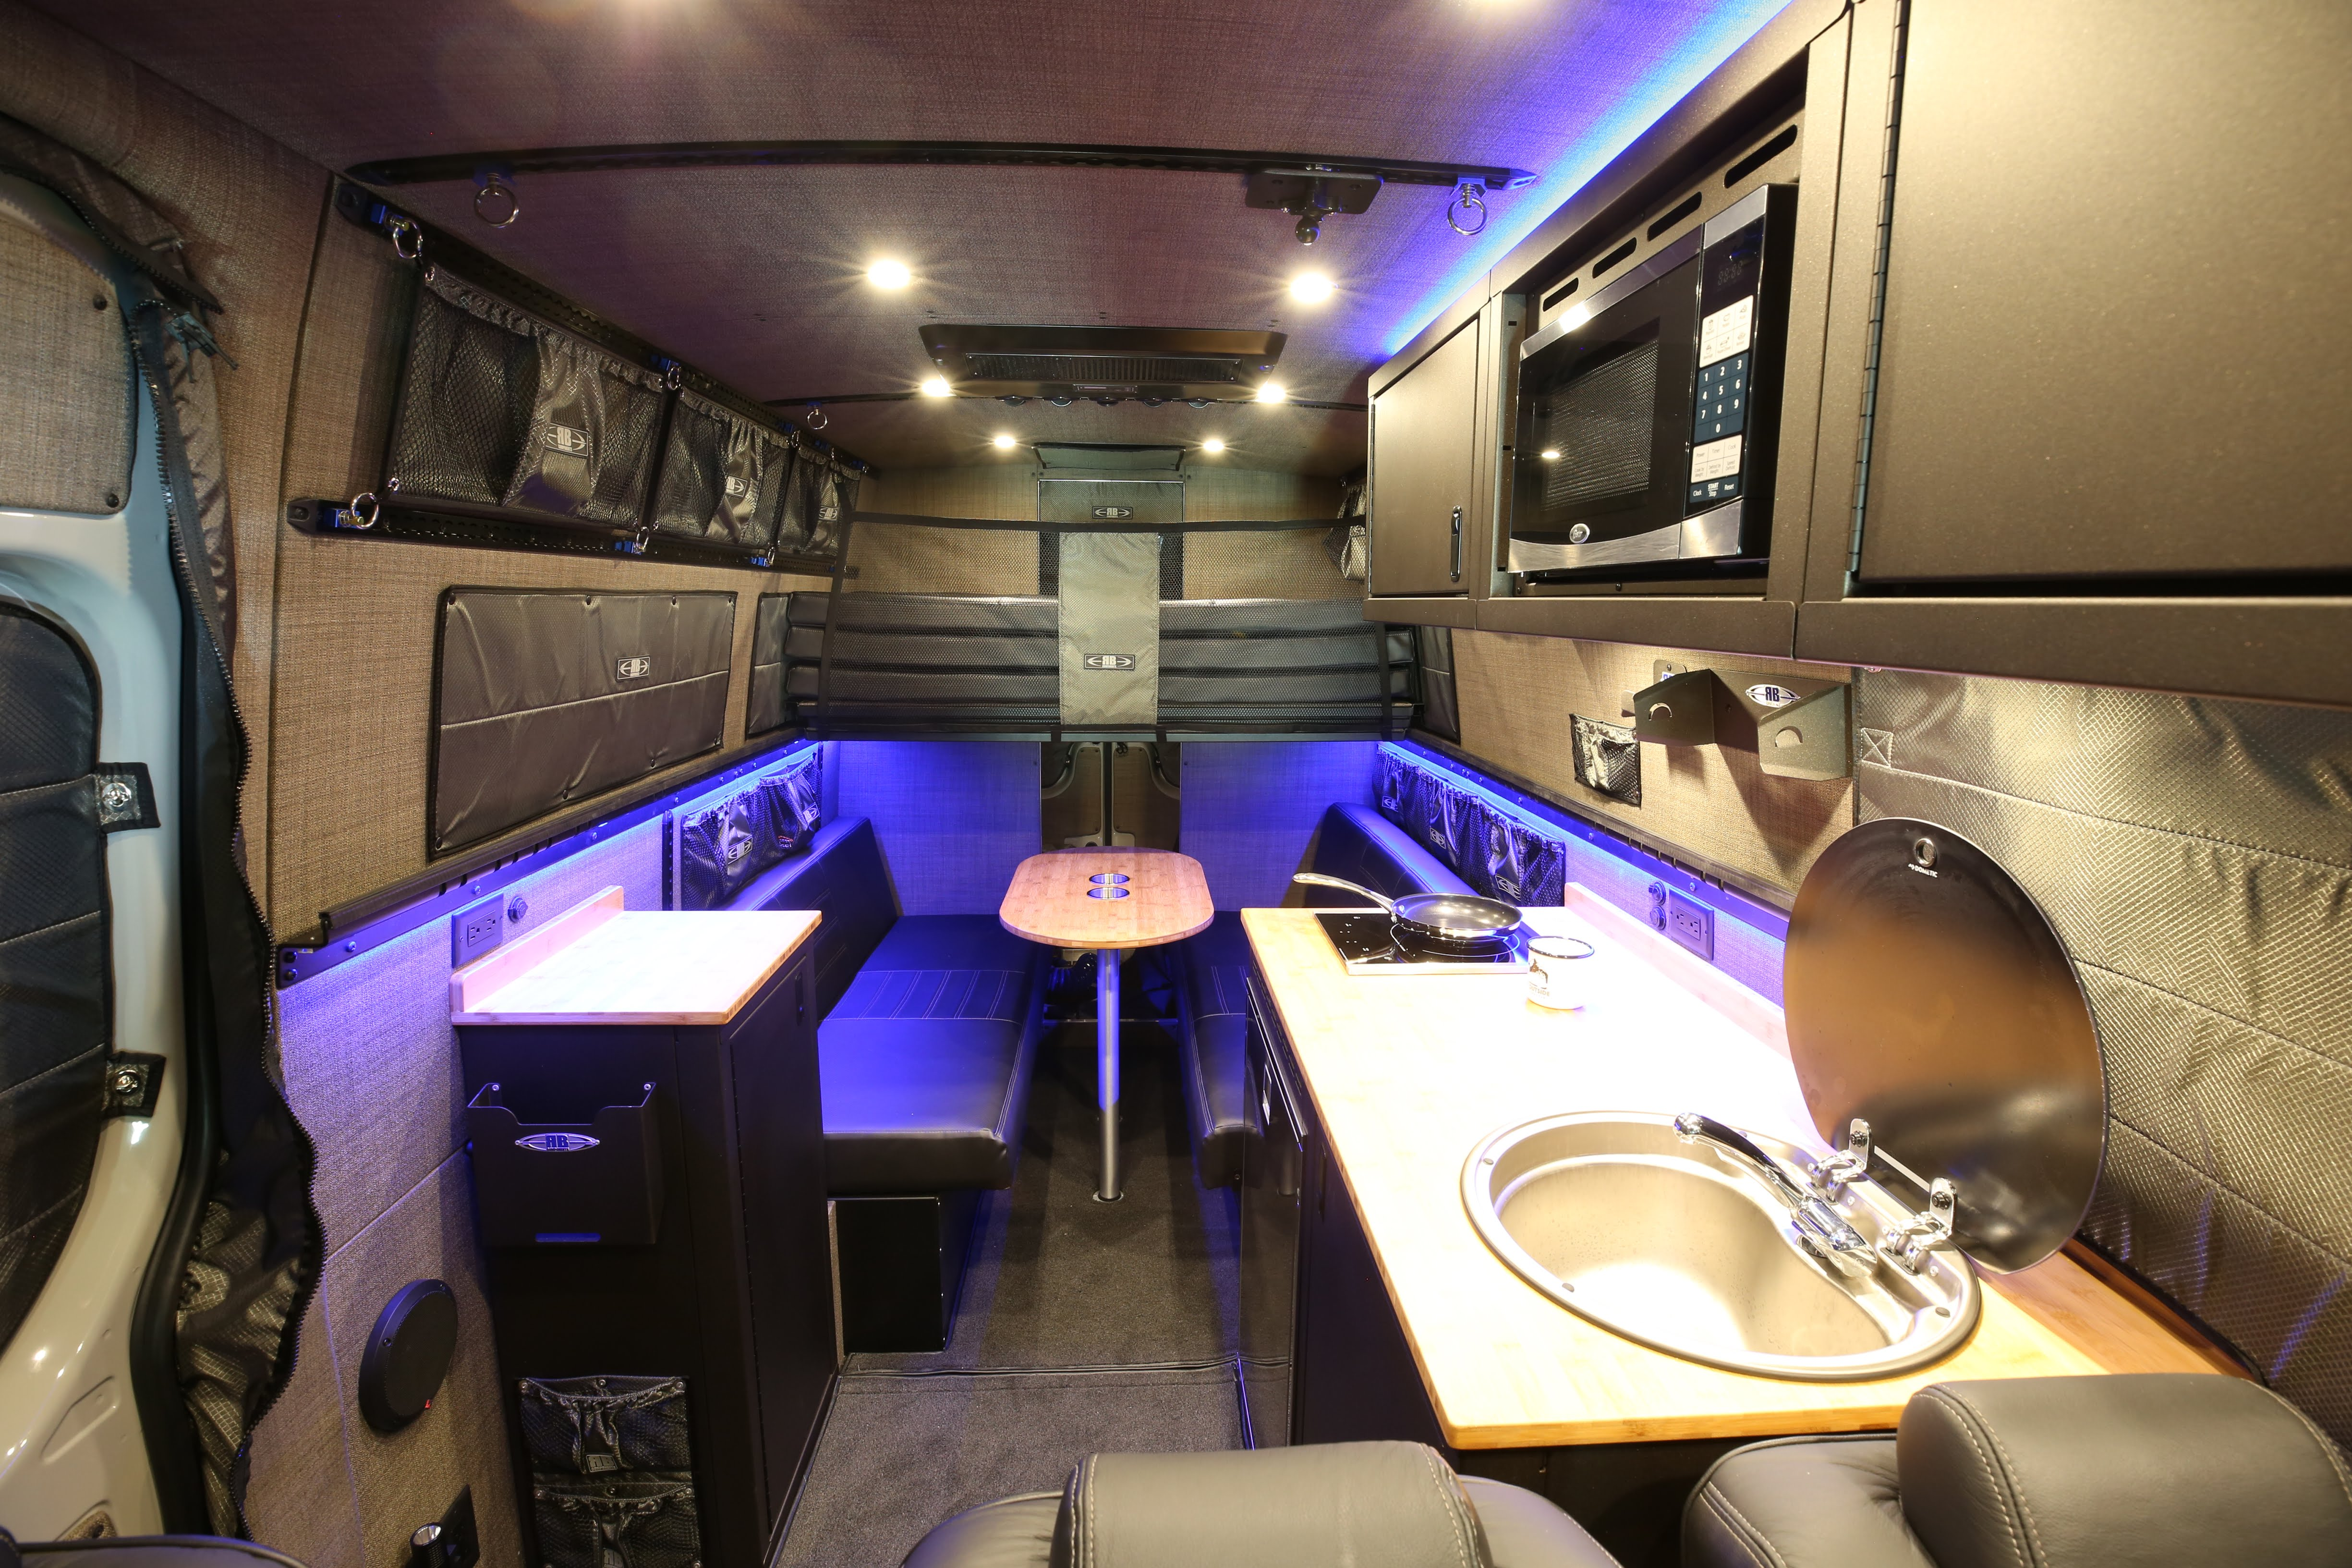 Camper van sleeps four and hides a clever bathroom